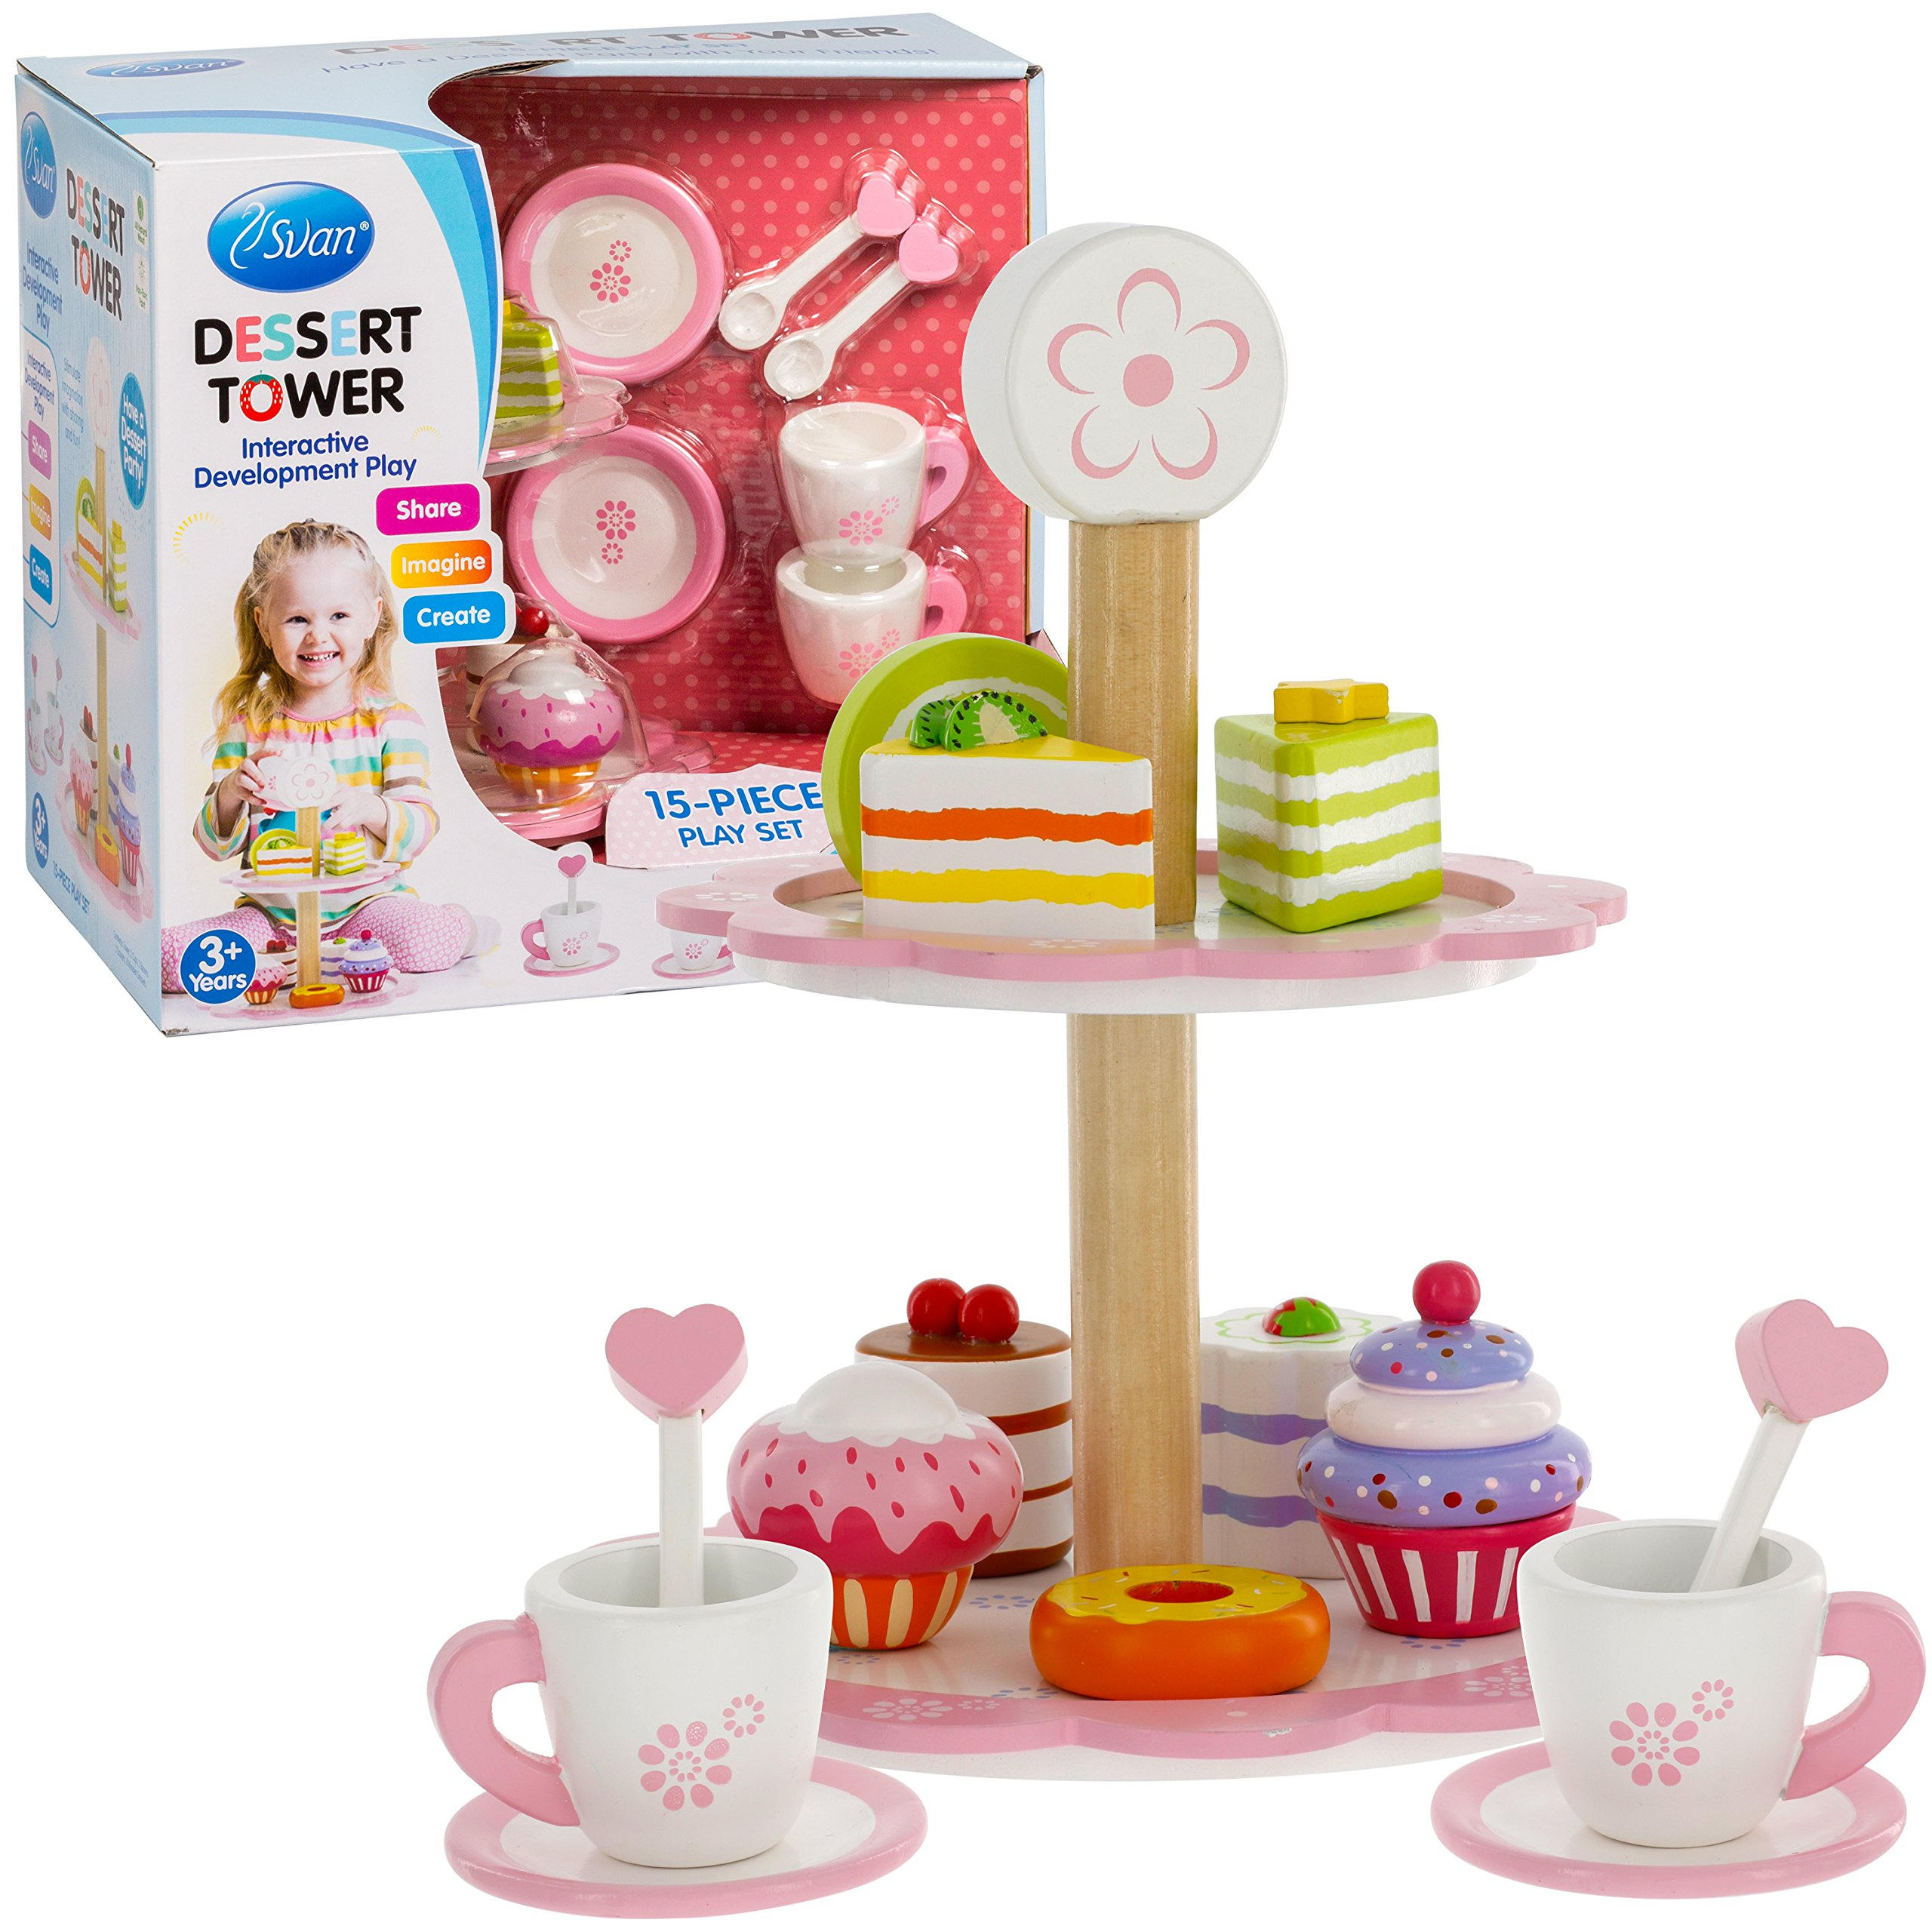 Tea Set Toy Tea Set And Dessert Tower Toy 15 Pc Cups Tower And Miniature Cakes And Sweets